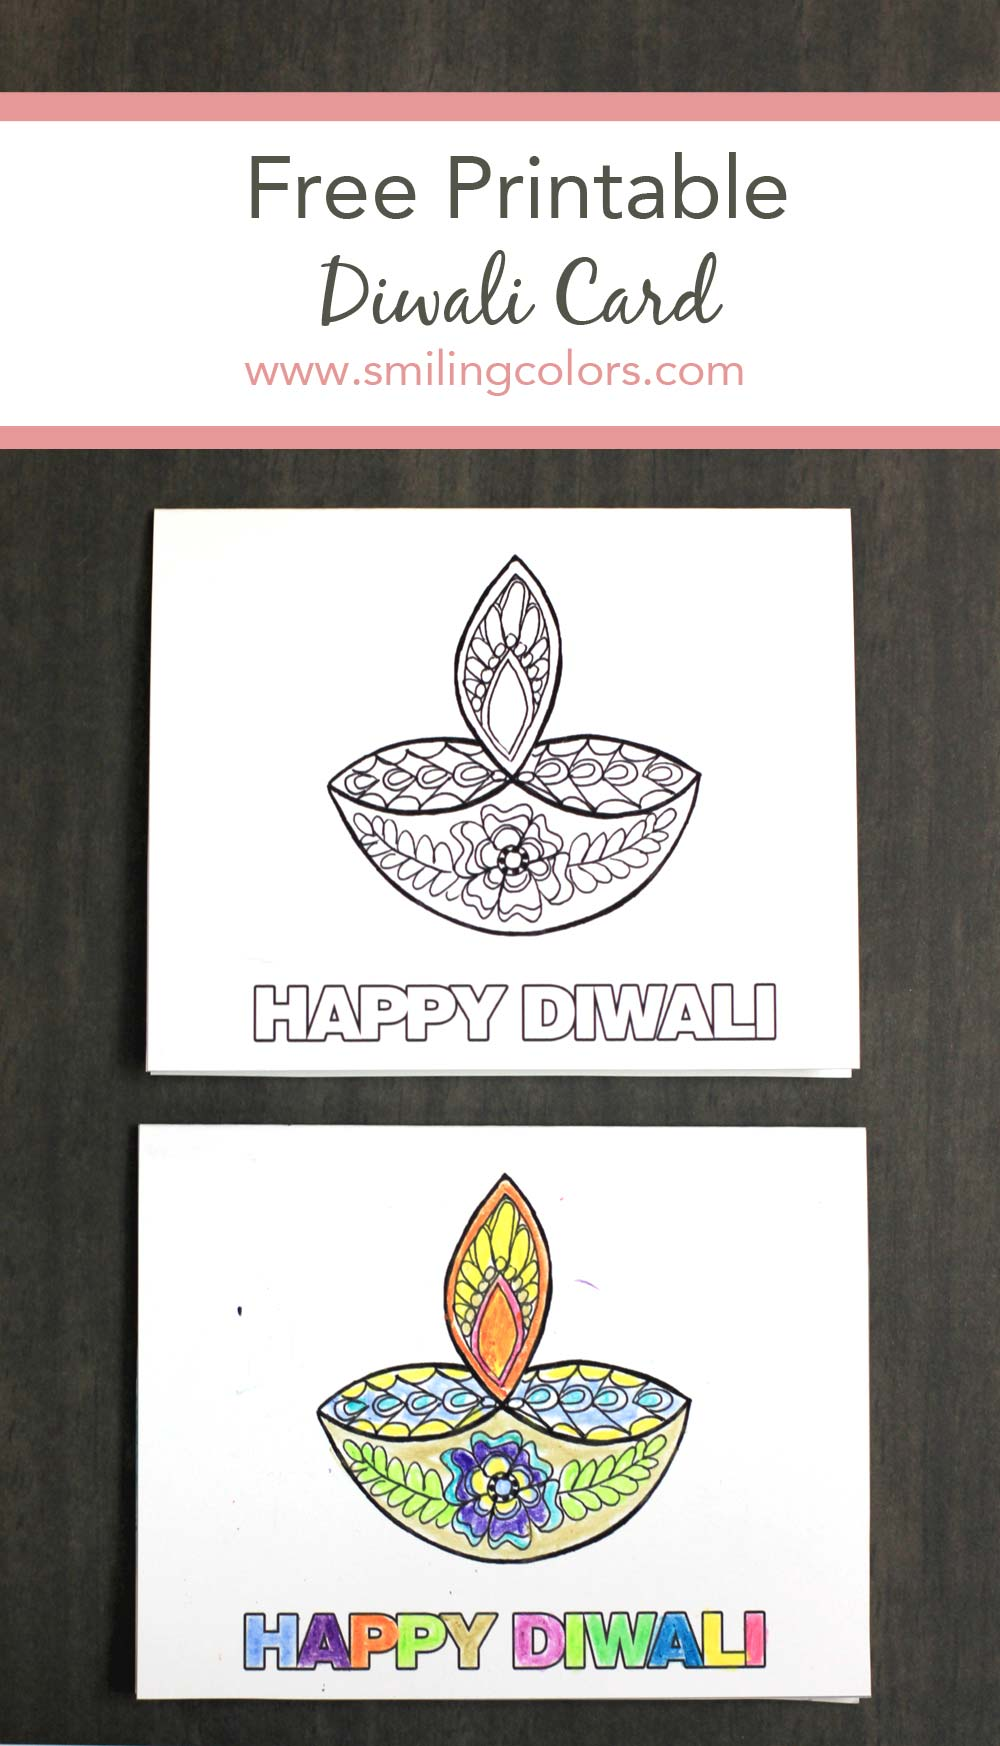 free printable happy diwali card print at home and gift immediately. Black Bedroom Furniture Sets. Home Design Ideas